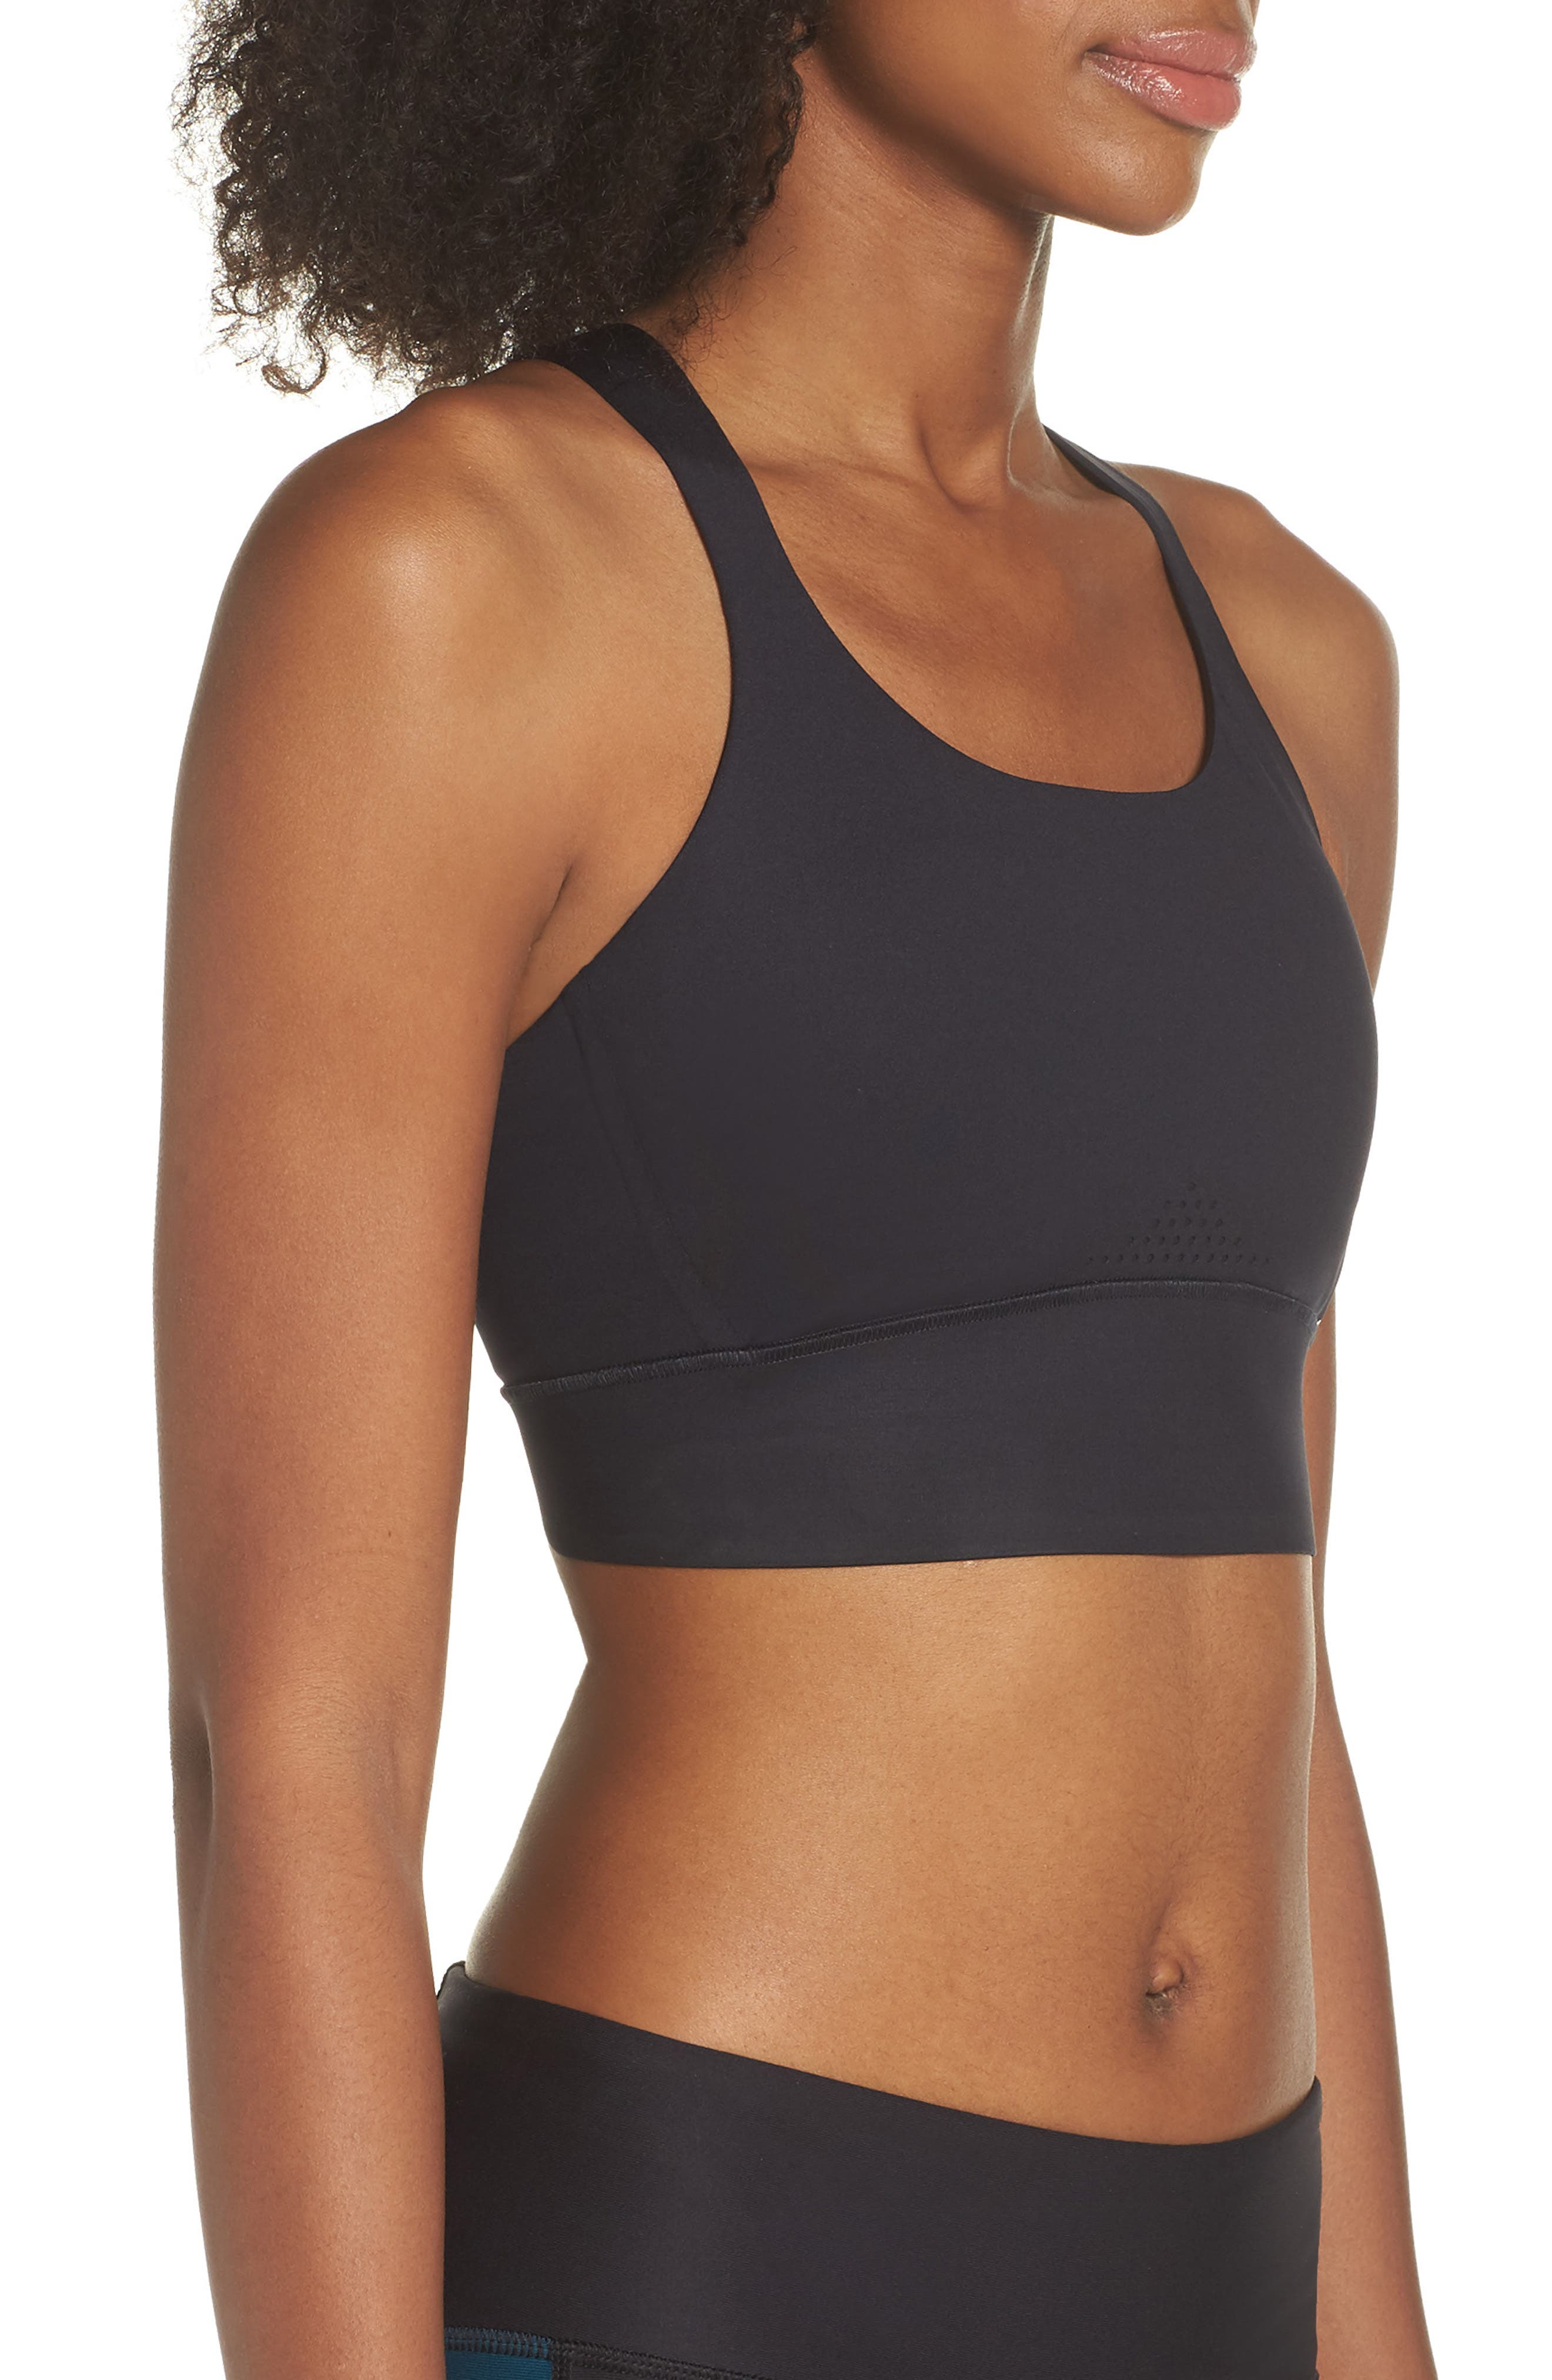 Breathelux Perforated Sports Bra,                             Alternate thumbnail 3, color,                             001